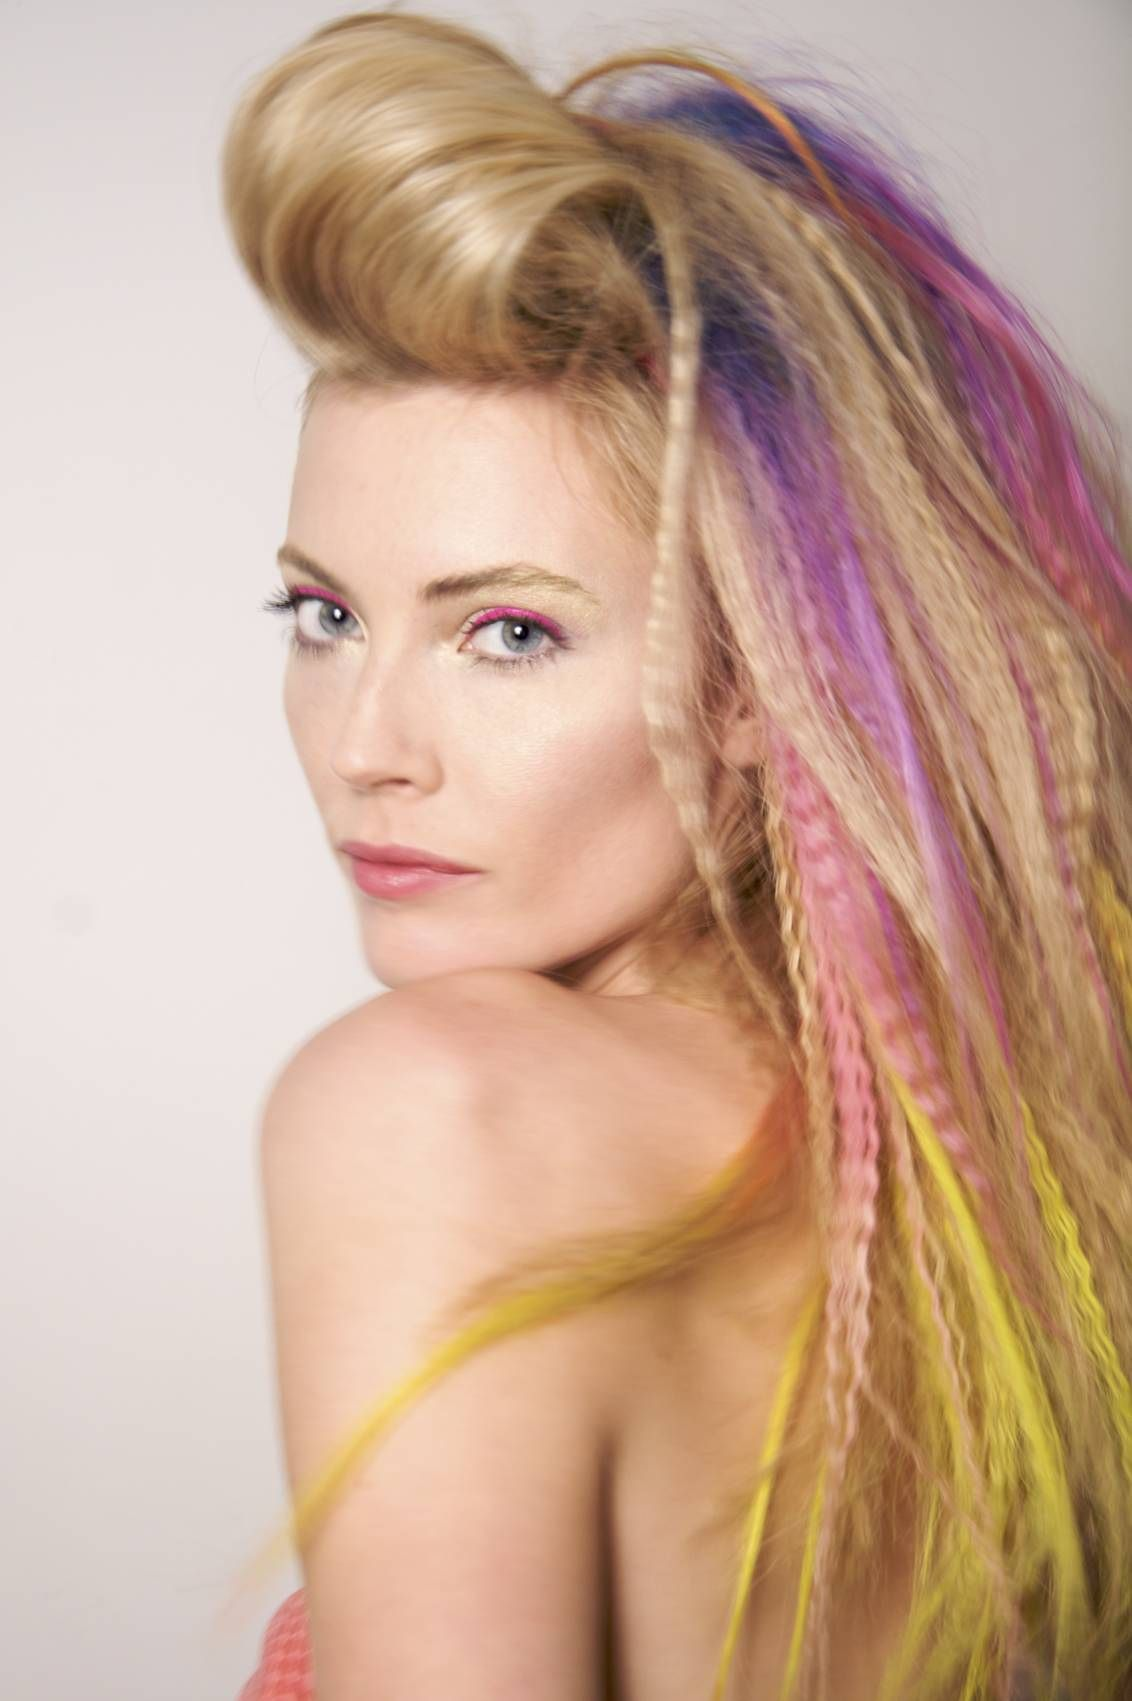 27 Latest Hairstyle Trends For Women In 2016 For Women 1980s